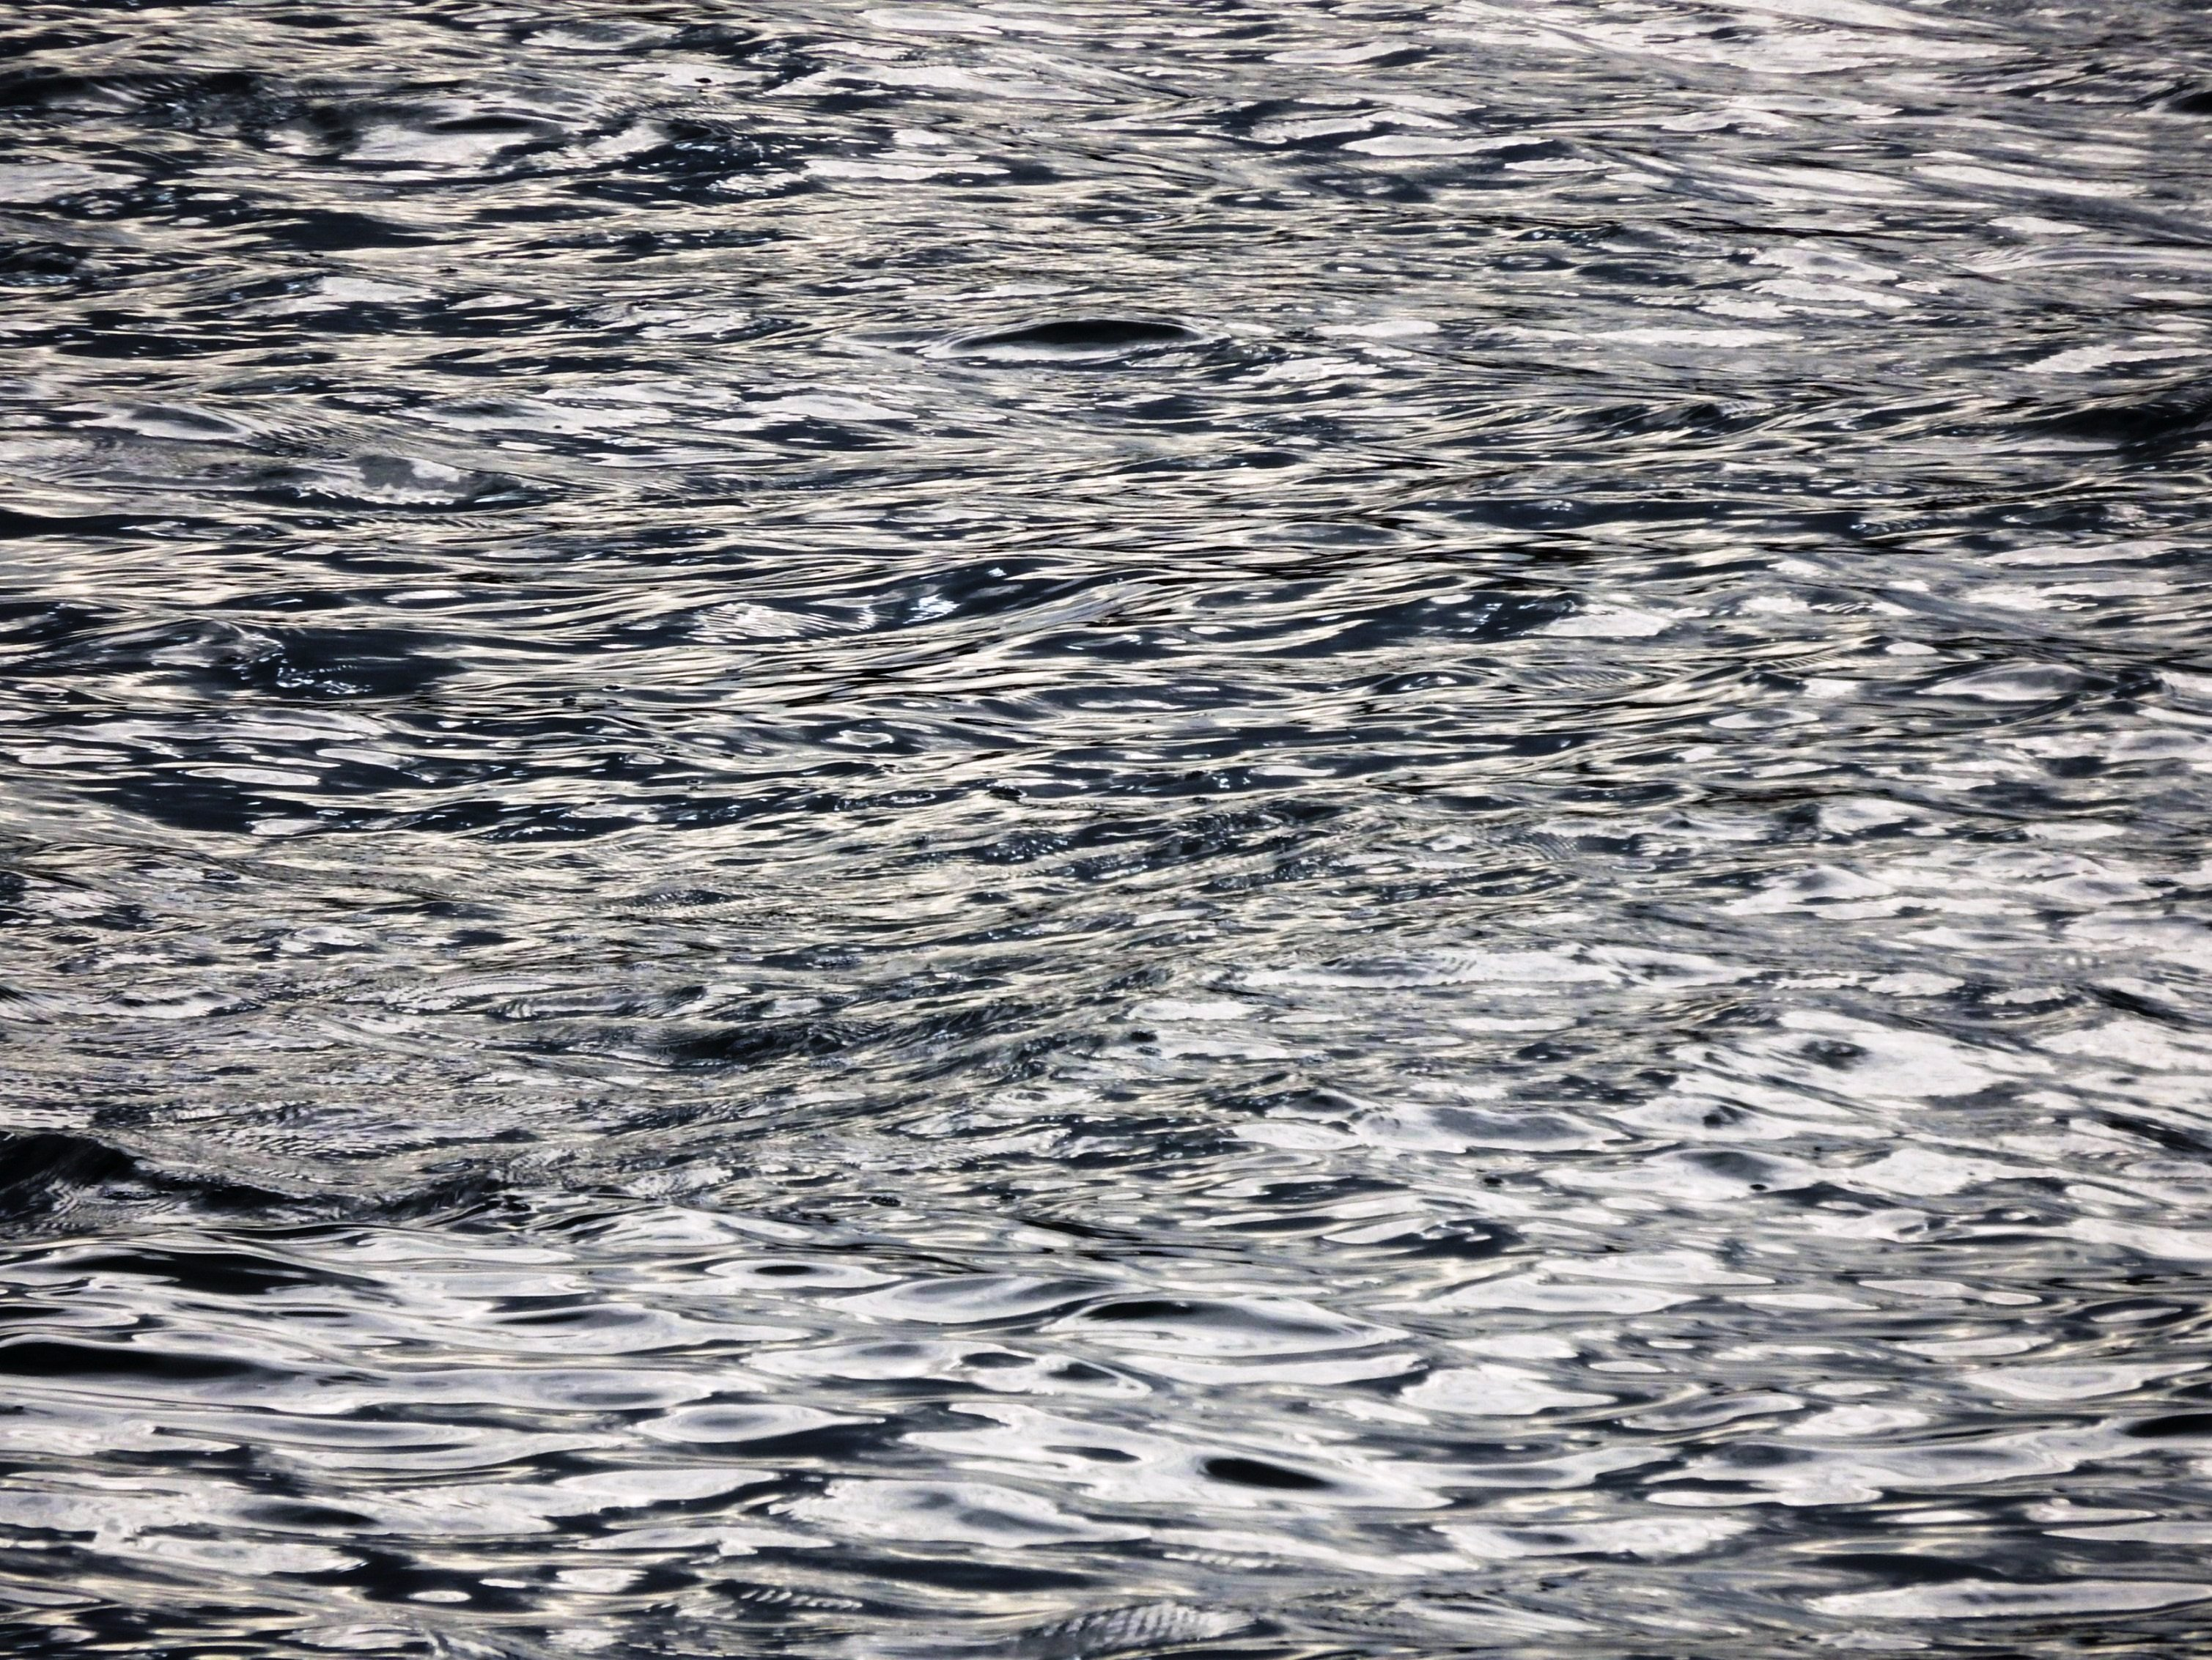 Ocean ripples and waves texture photo